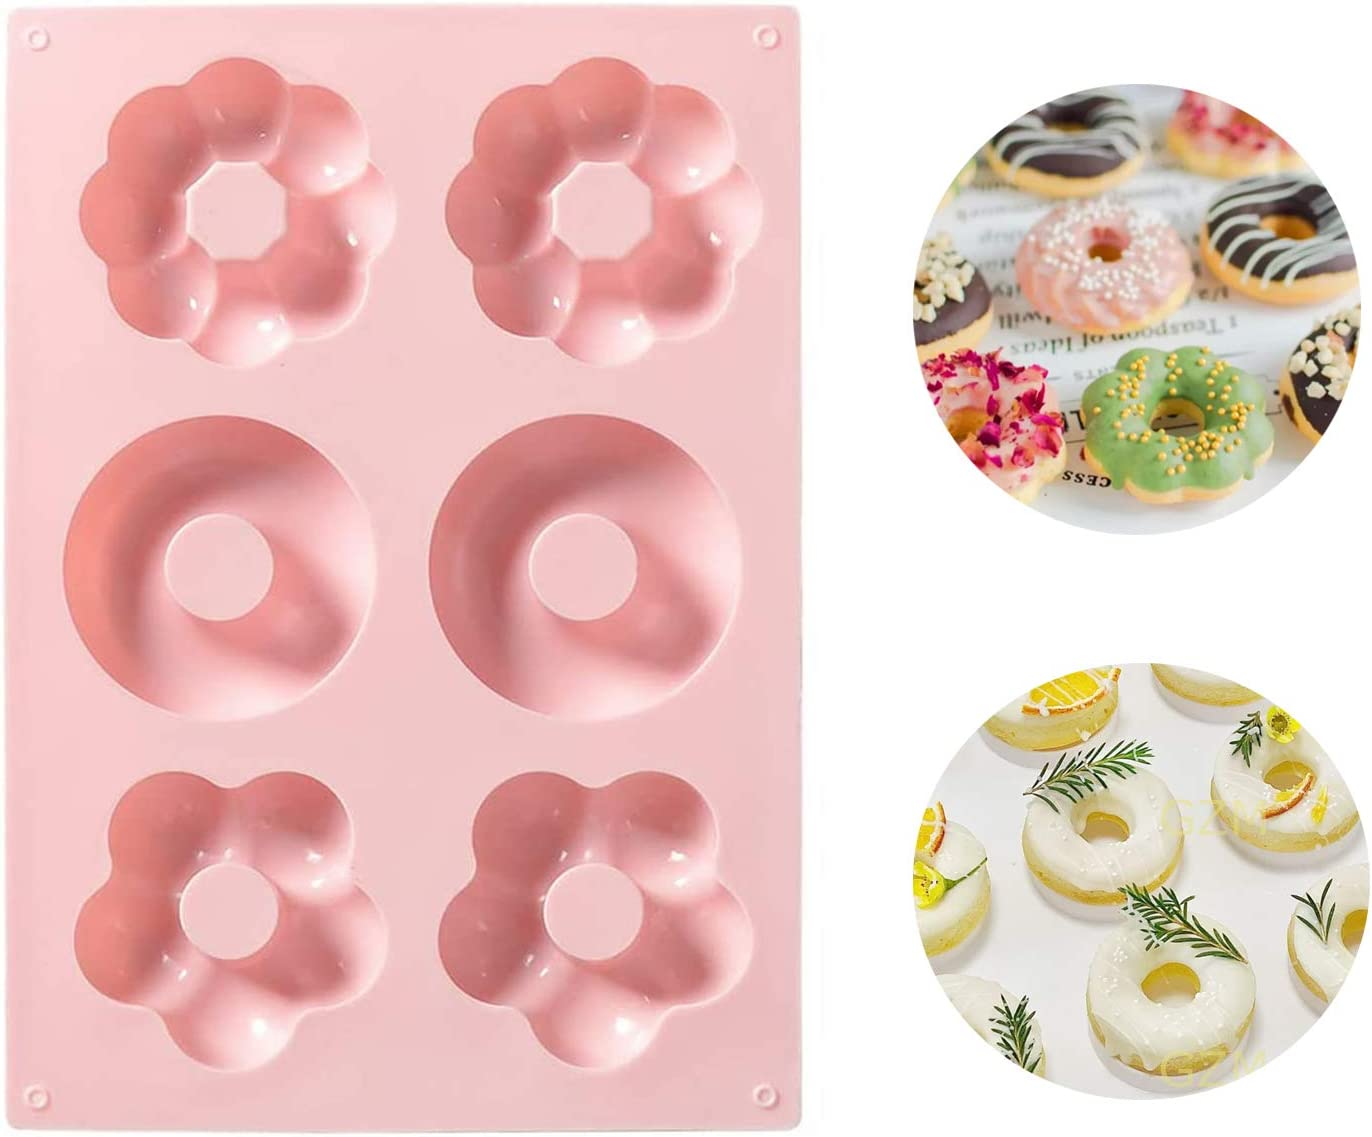 Food grade silicone doughnut mold -Non-stick Round and Flower Donut Molds(Pink)